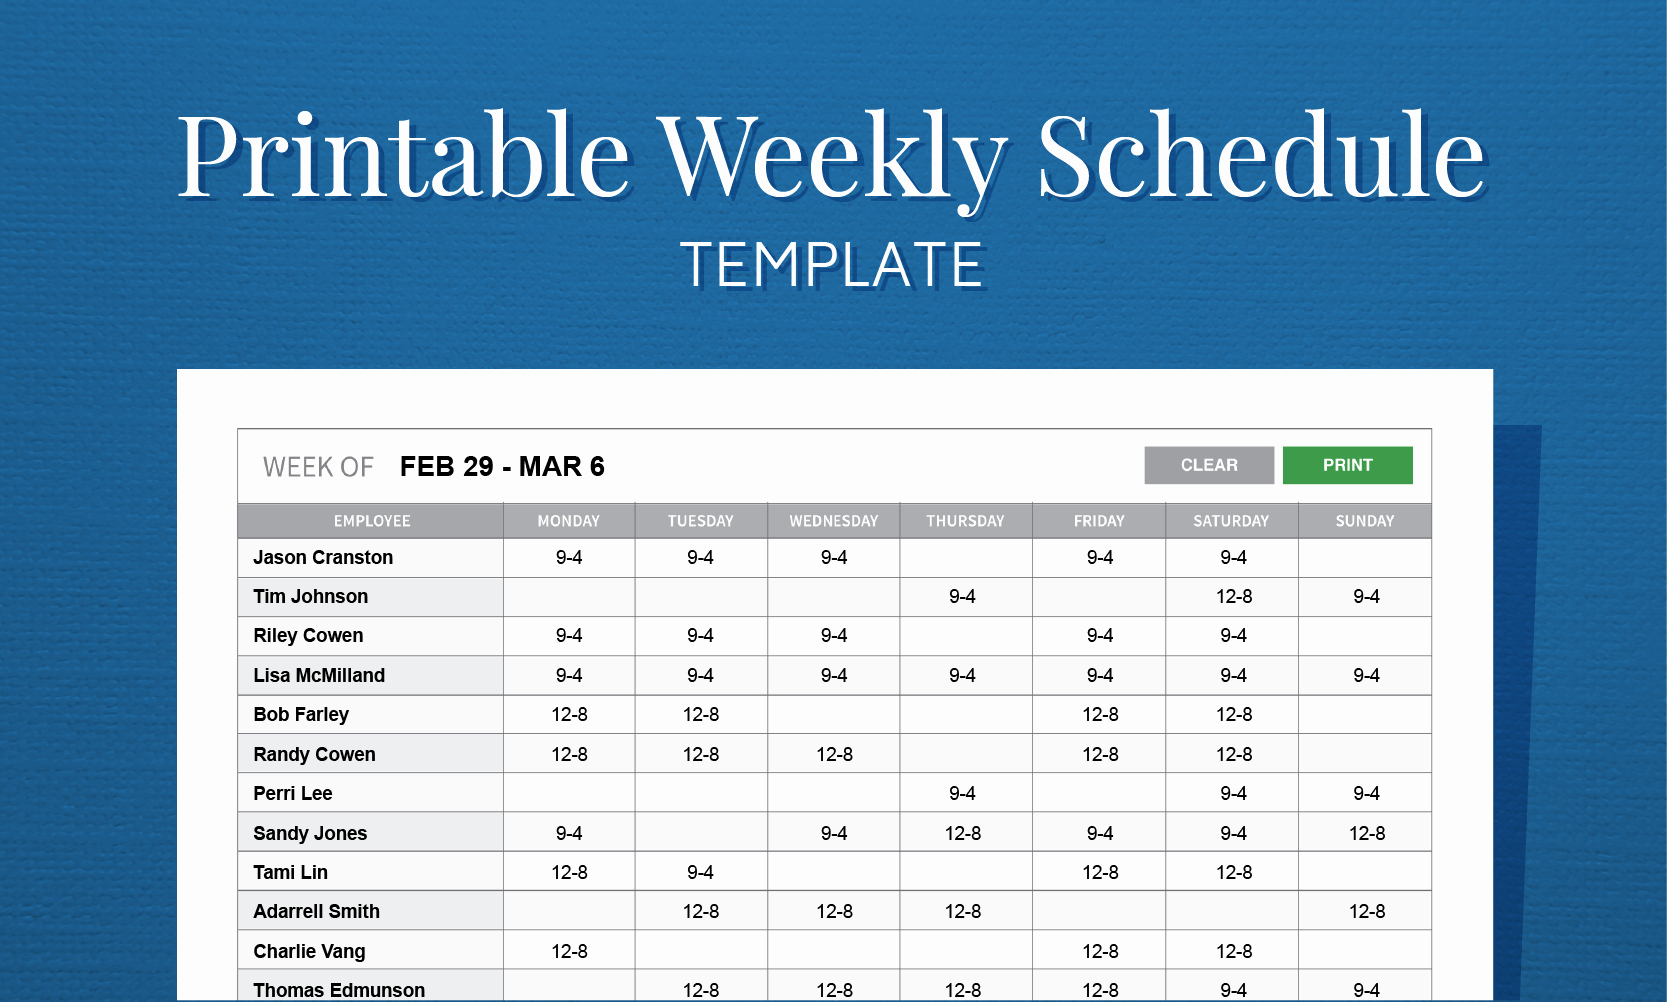 Employee Schedule Template Word Unique Free Printable Weekly Work Schedule Template for Employee